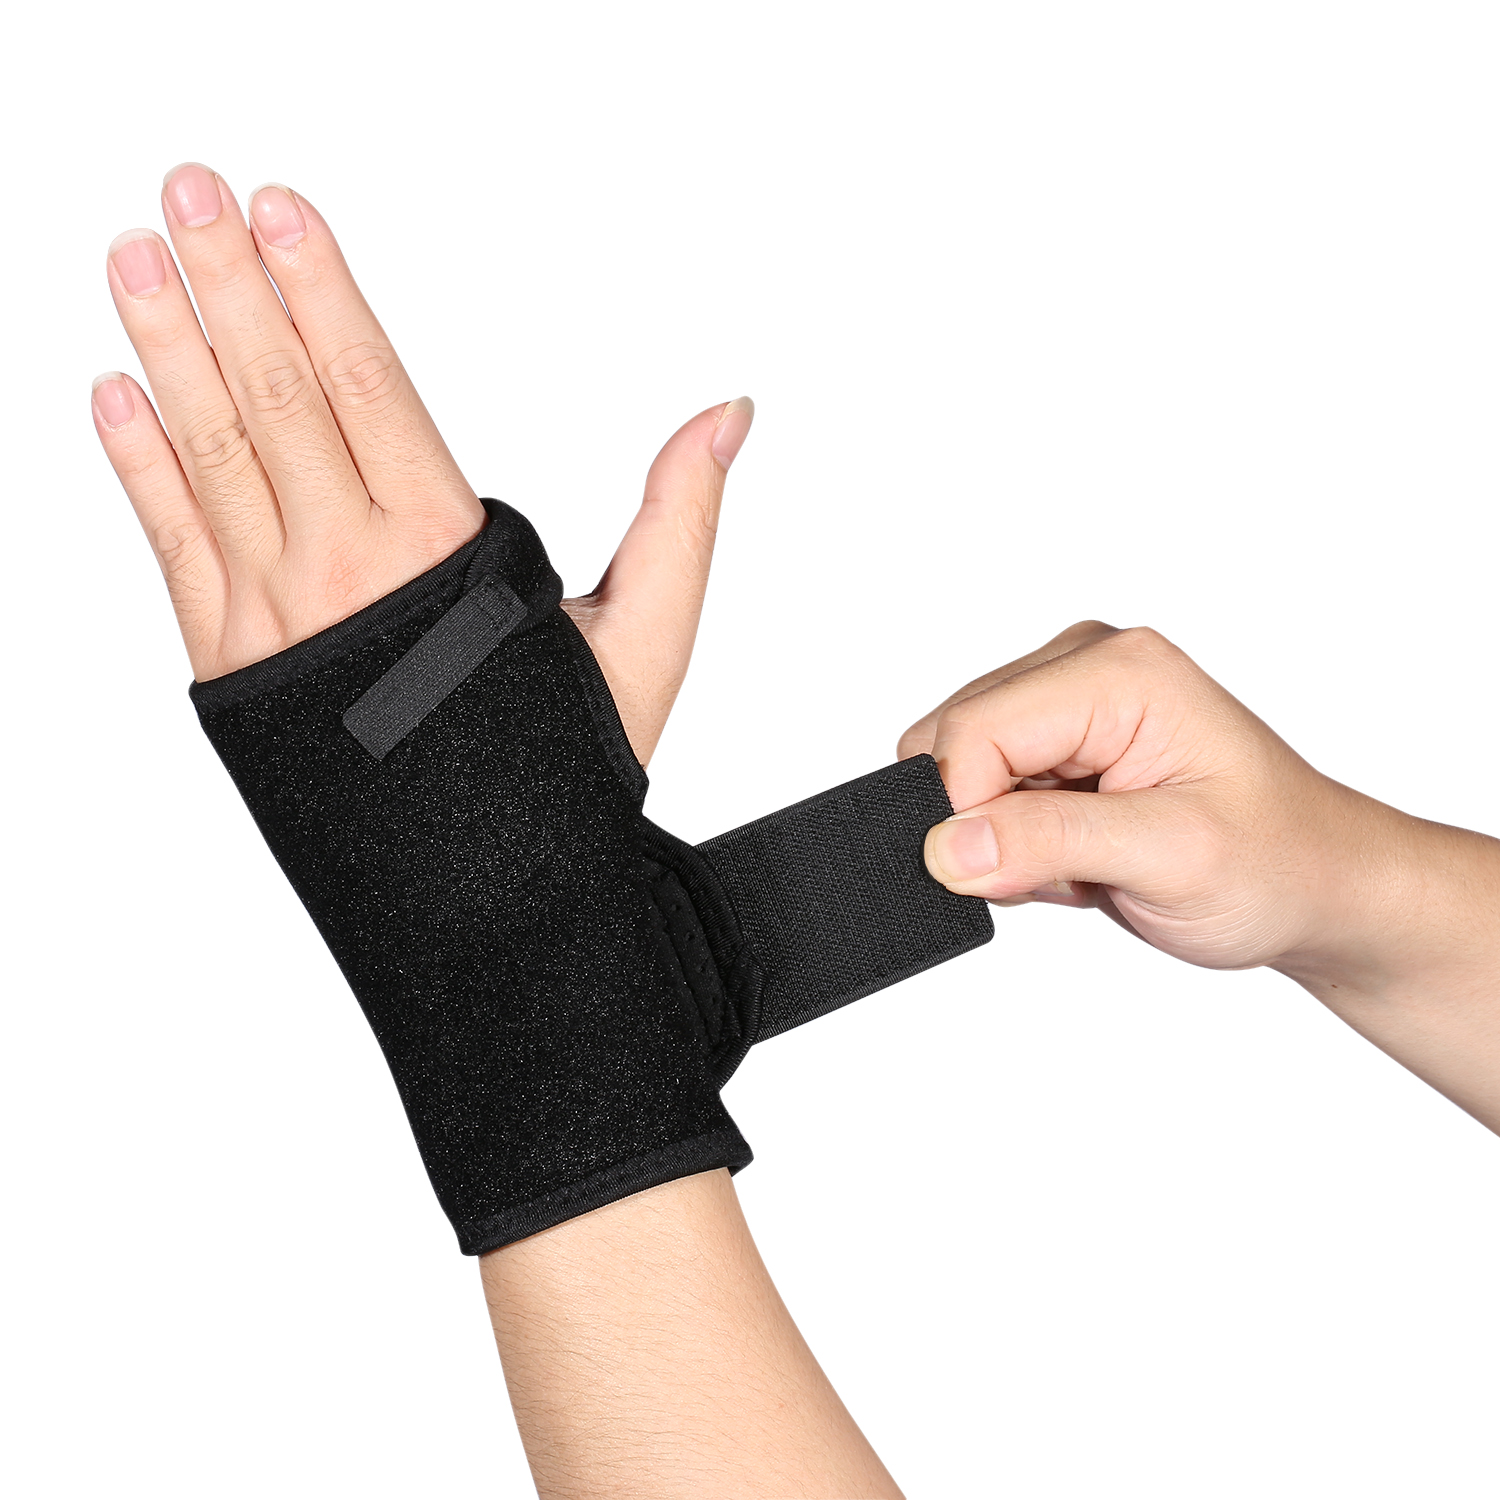 Wrist Brace Splint Support Right Hand Carpal Syndrome Support Recovery Black